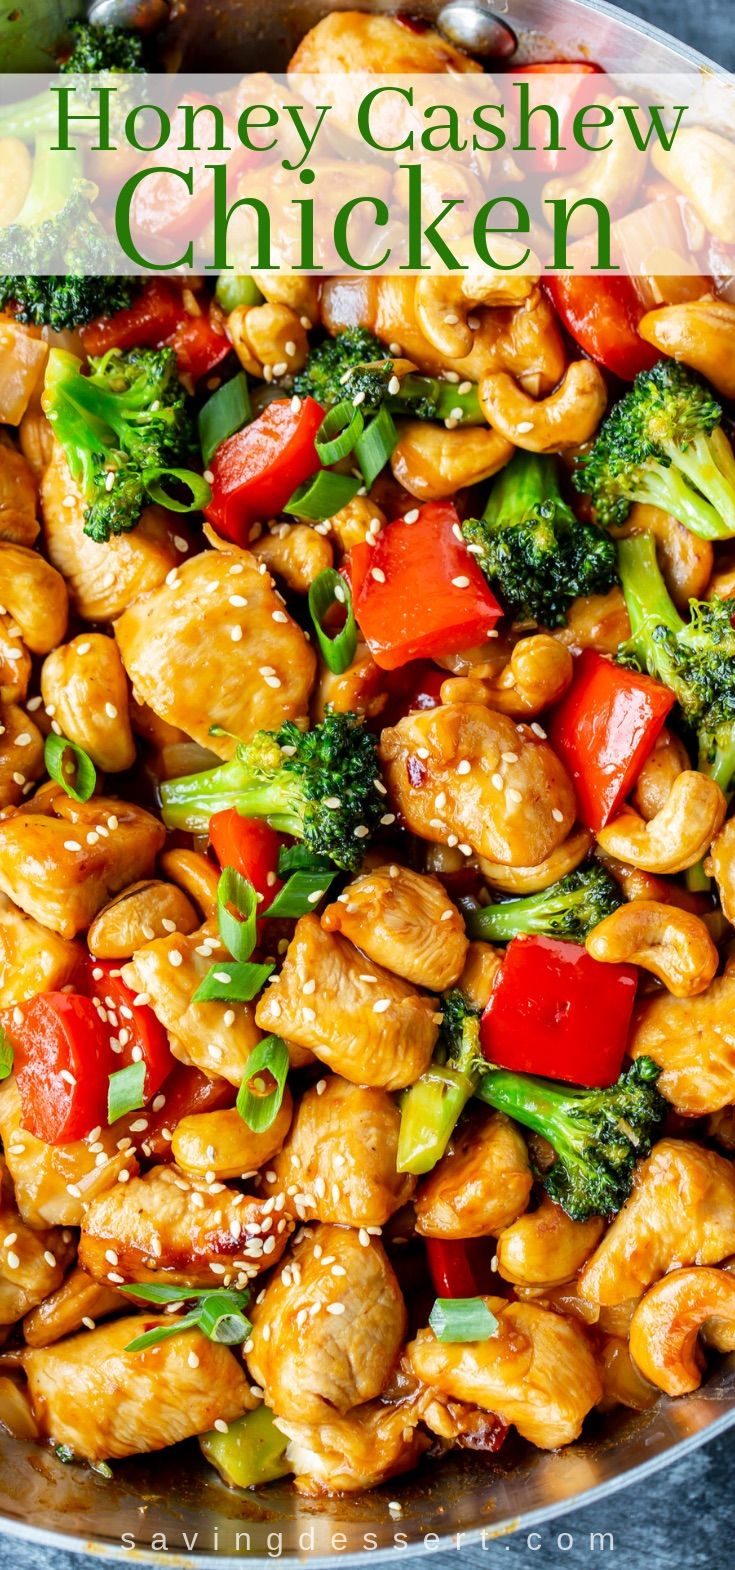 Honey Cashew Chicken #bellpepperrecipes